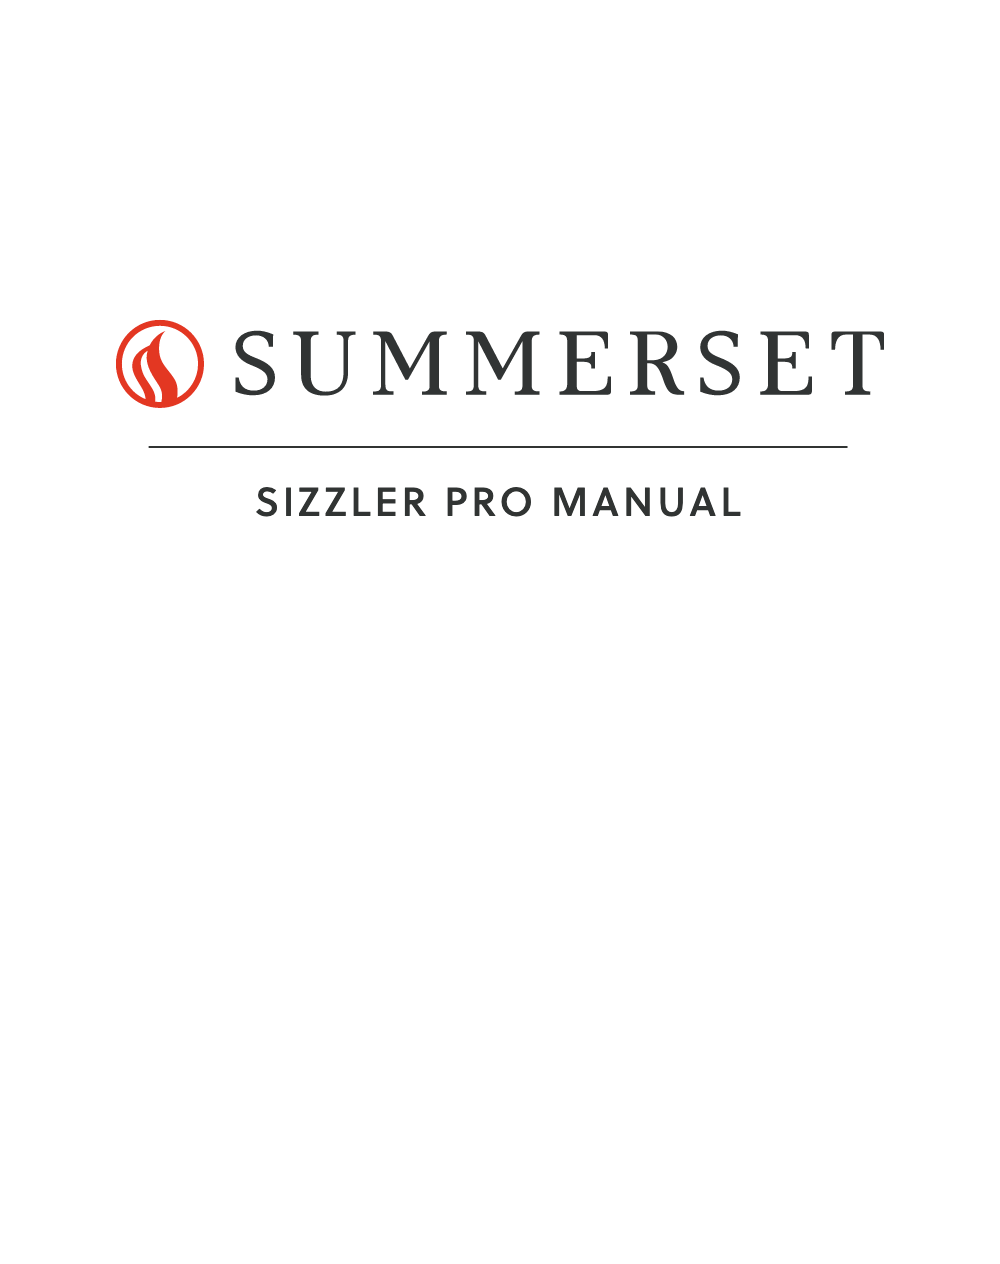 Summerset Sizzler Pro Manual